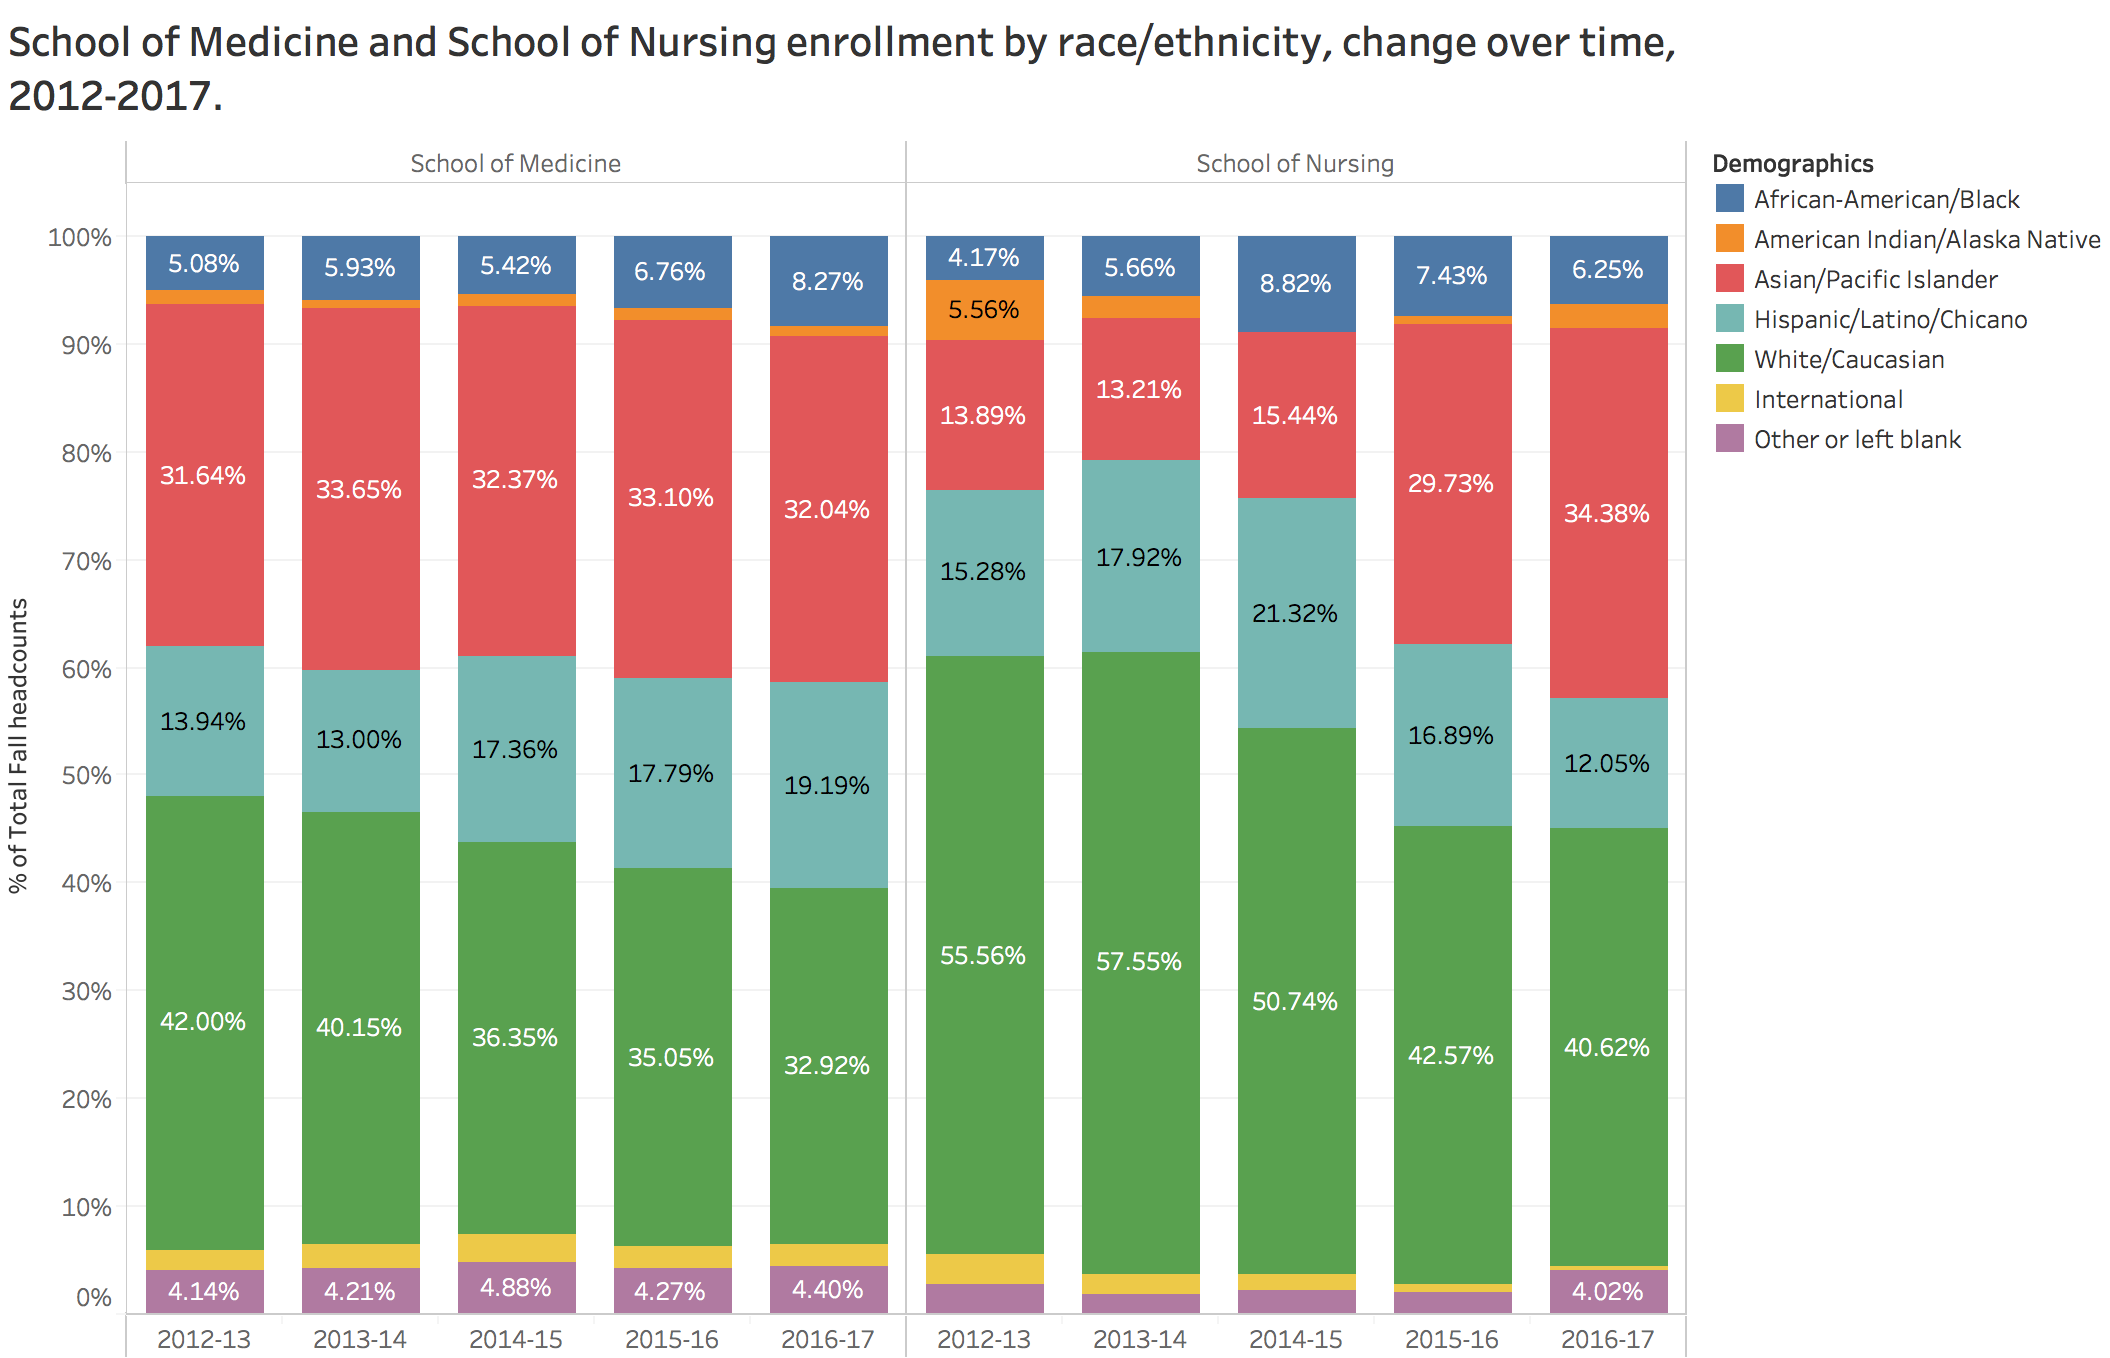 Schools of Medicine and Nursing enrollment by race/ethnicity 2012-2017